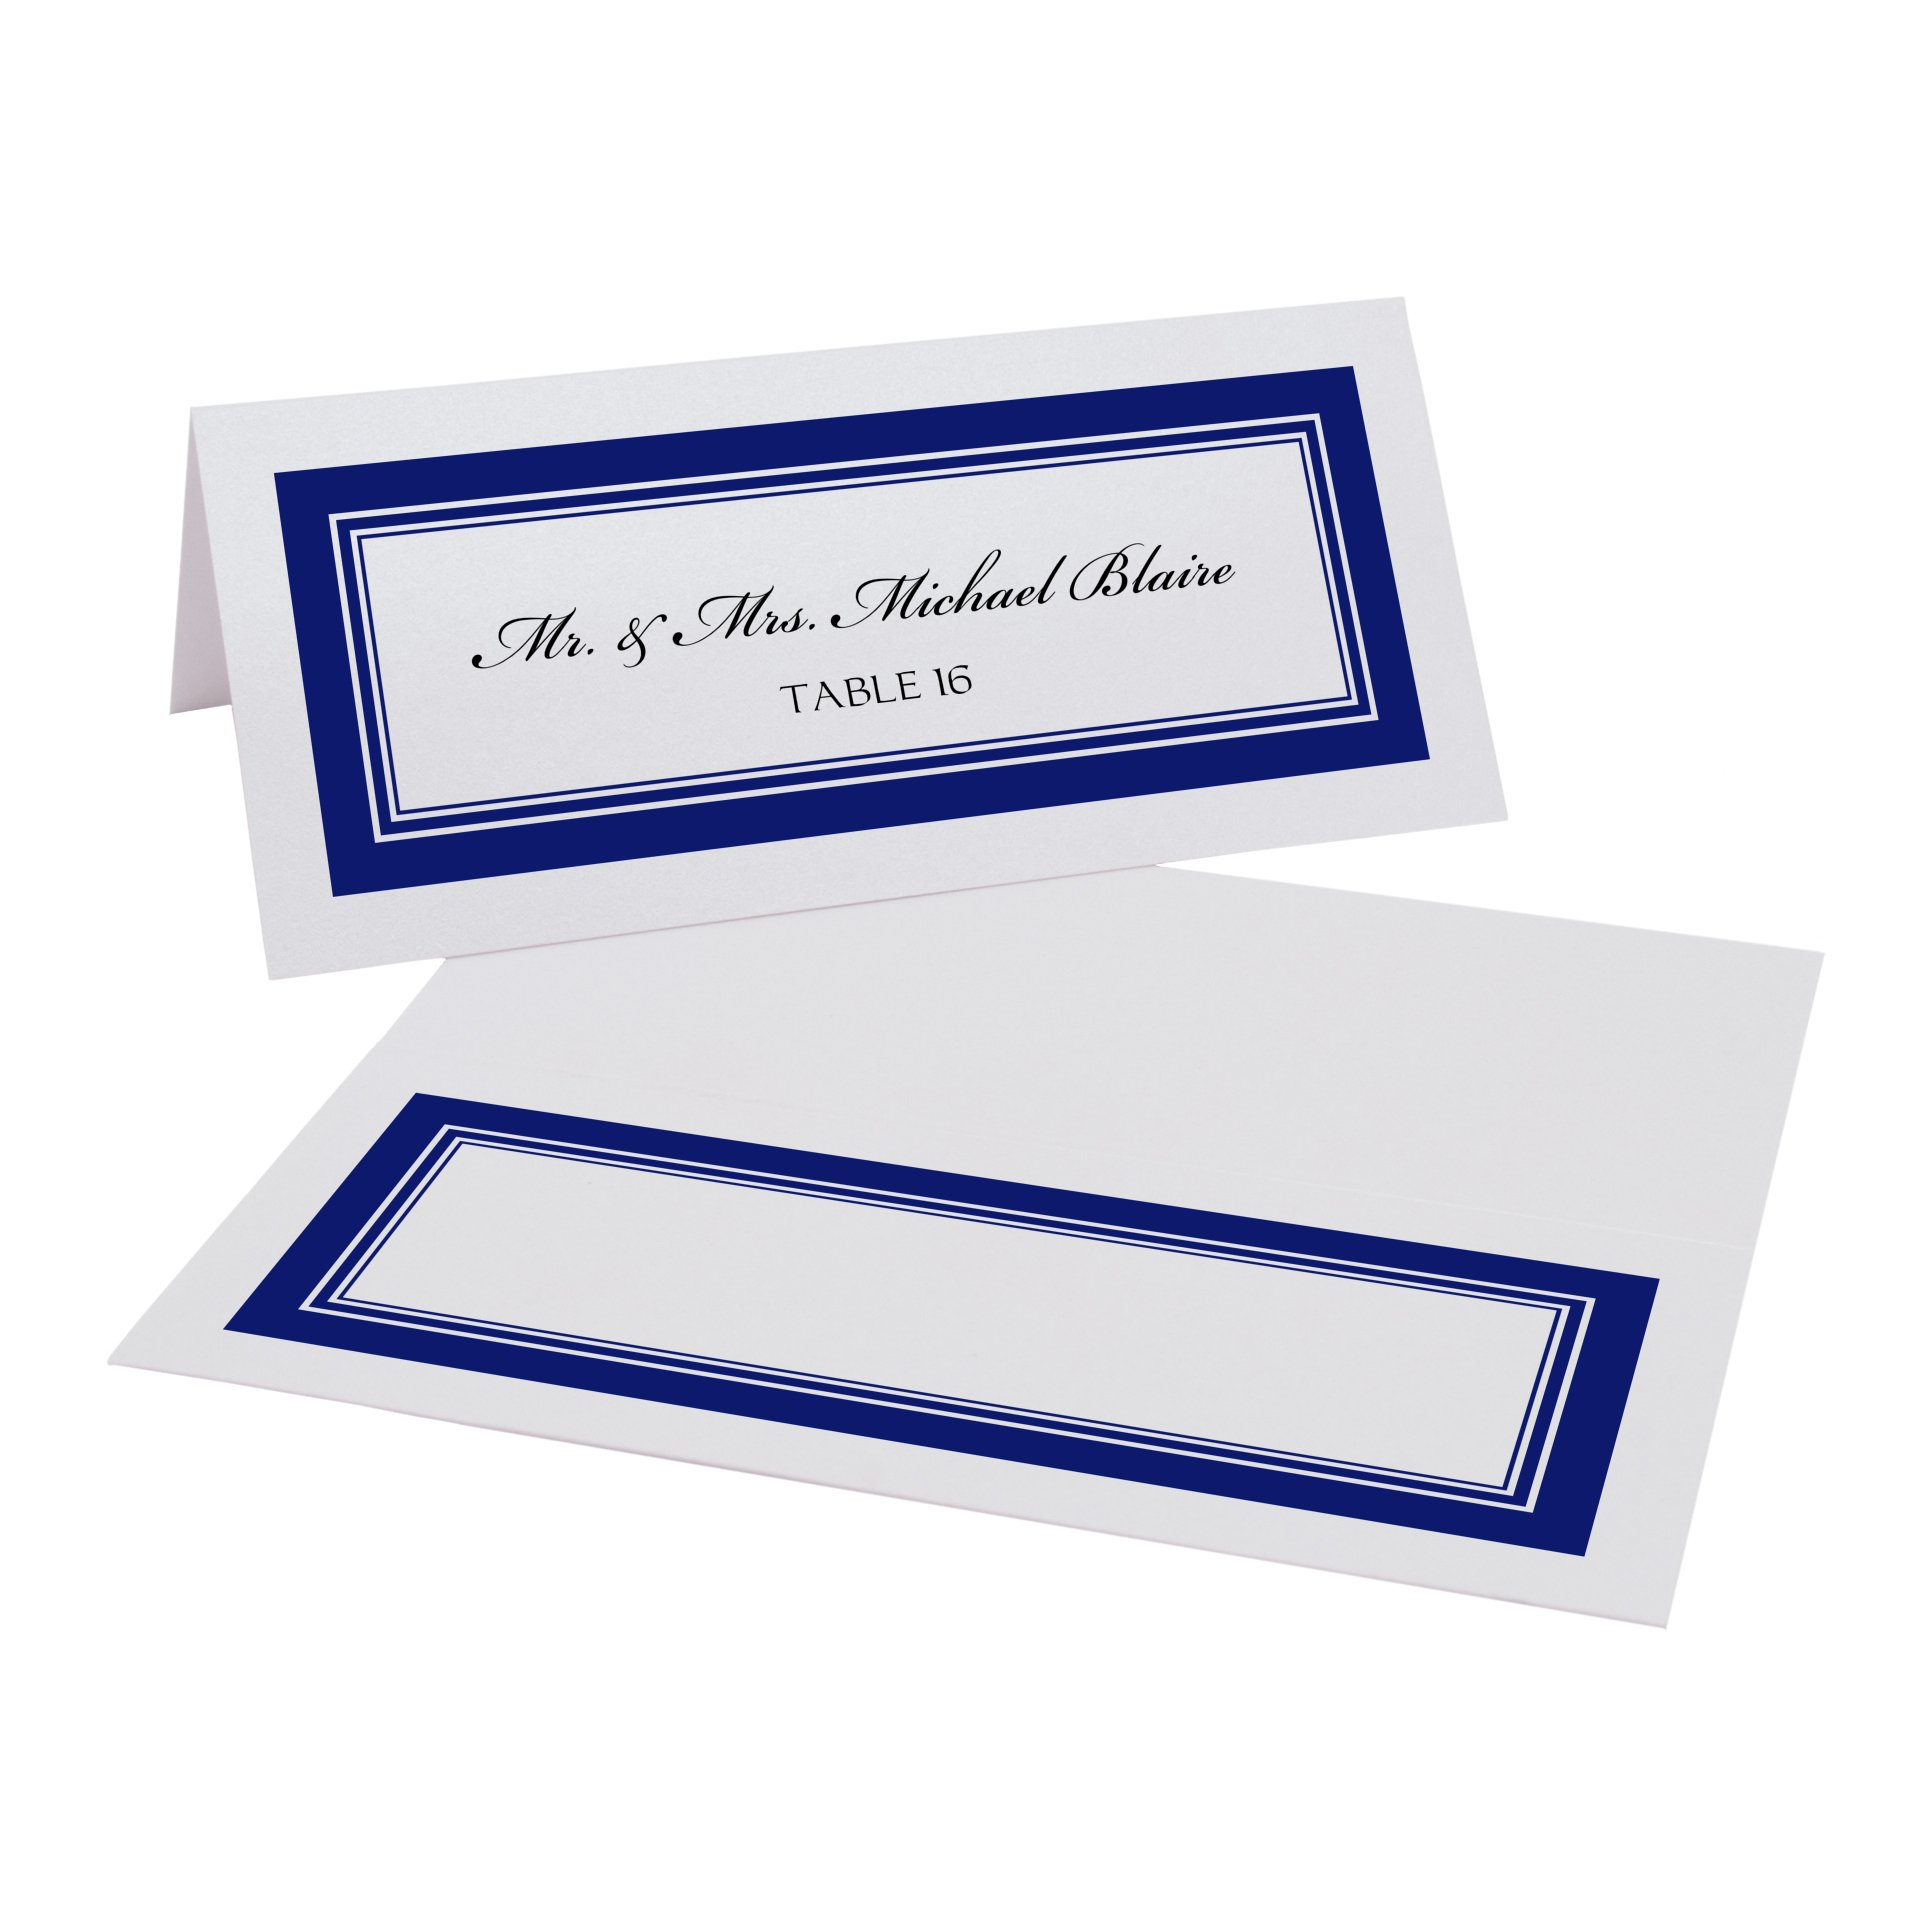 Triple Line Border Place Cards, White, Navy, Set of 375 by Documents and Designs